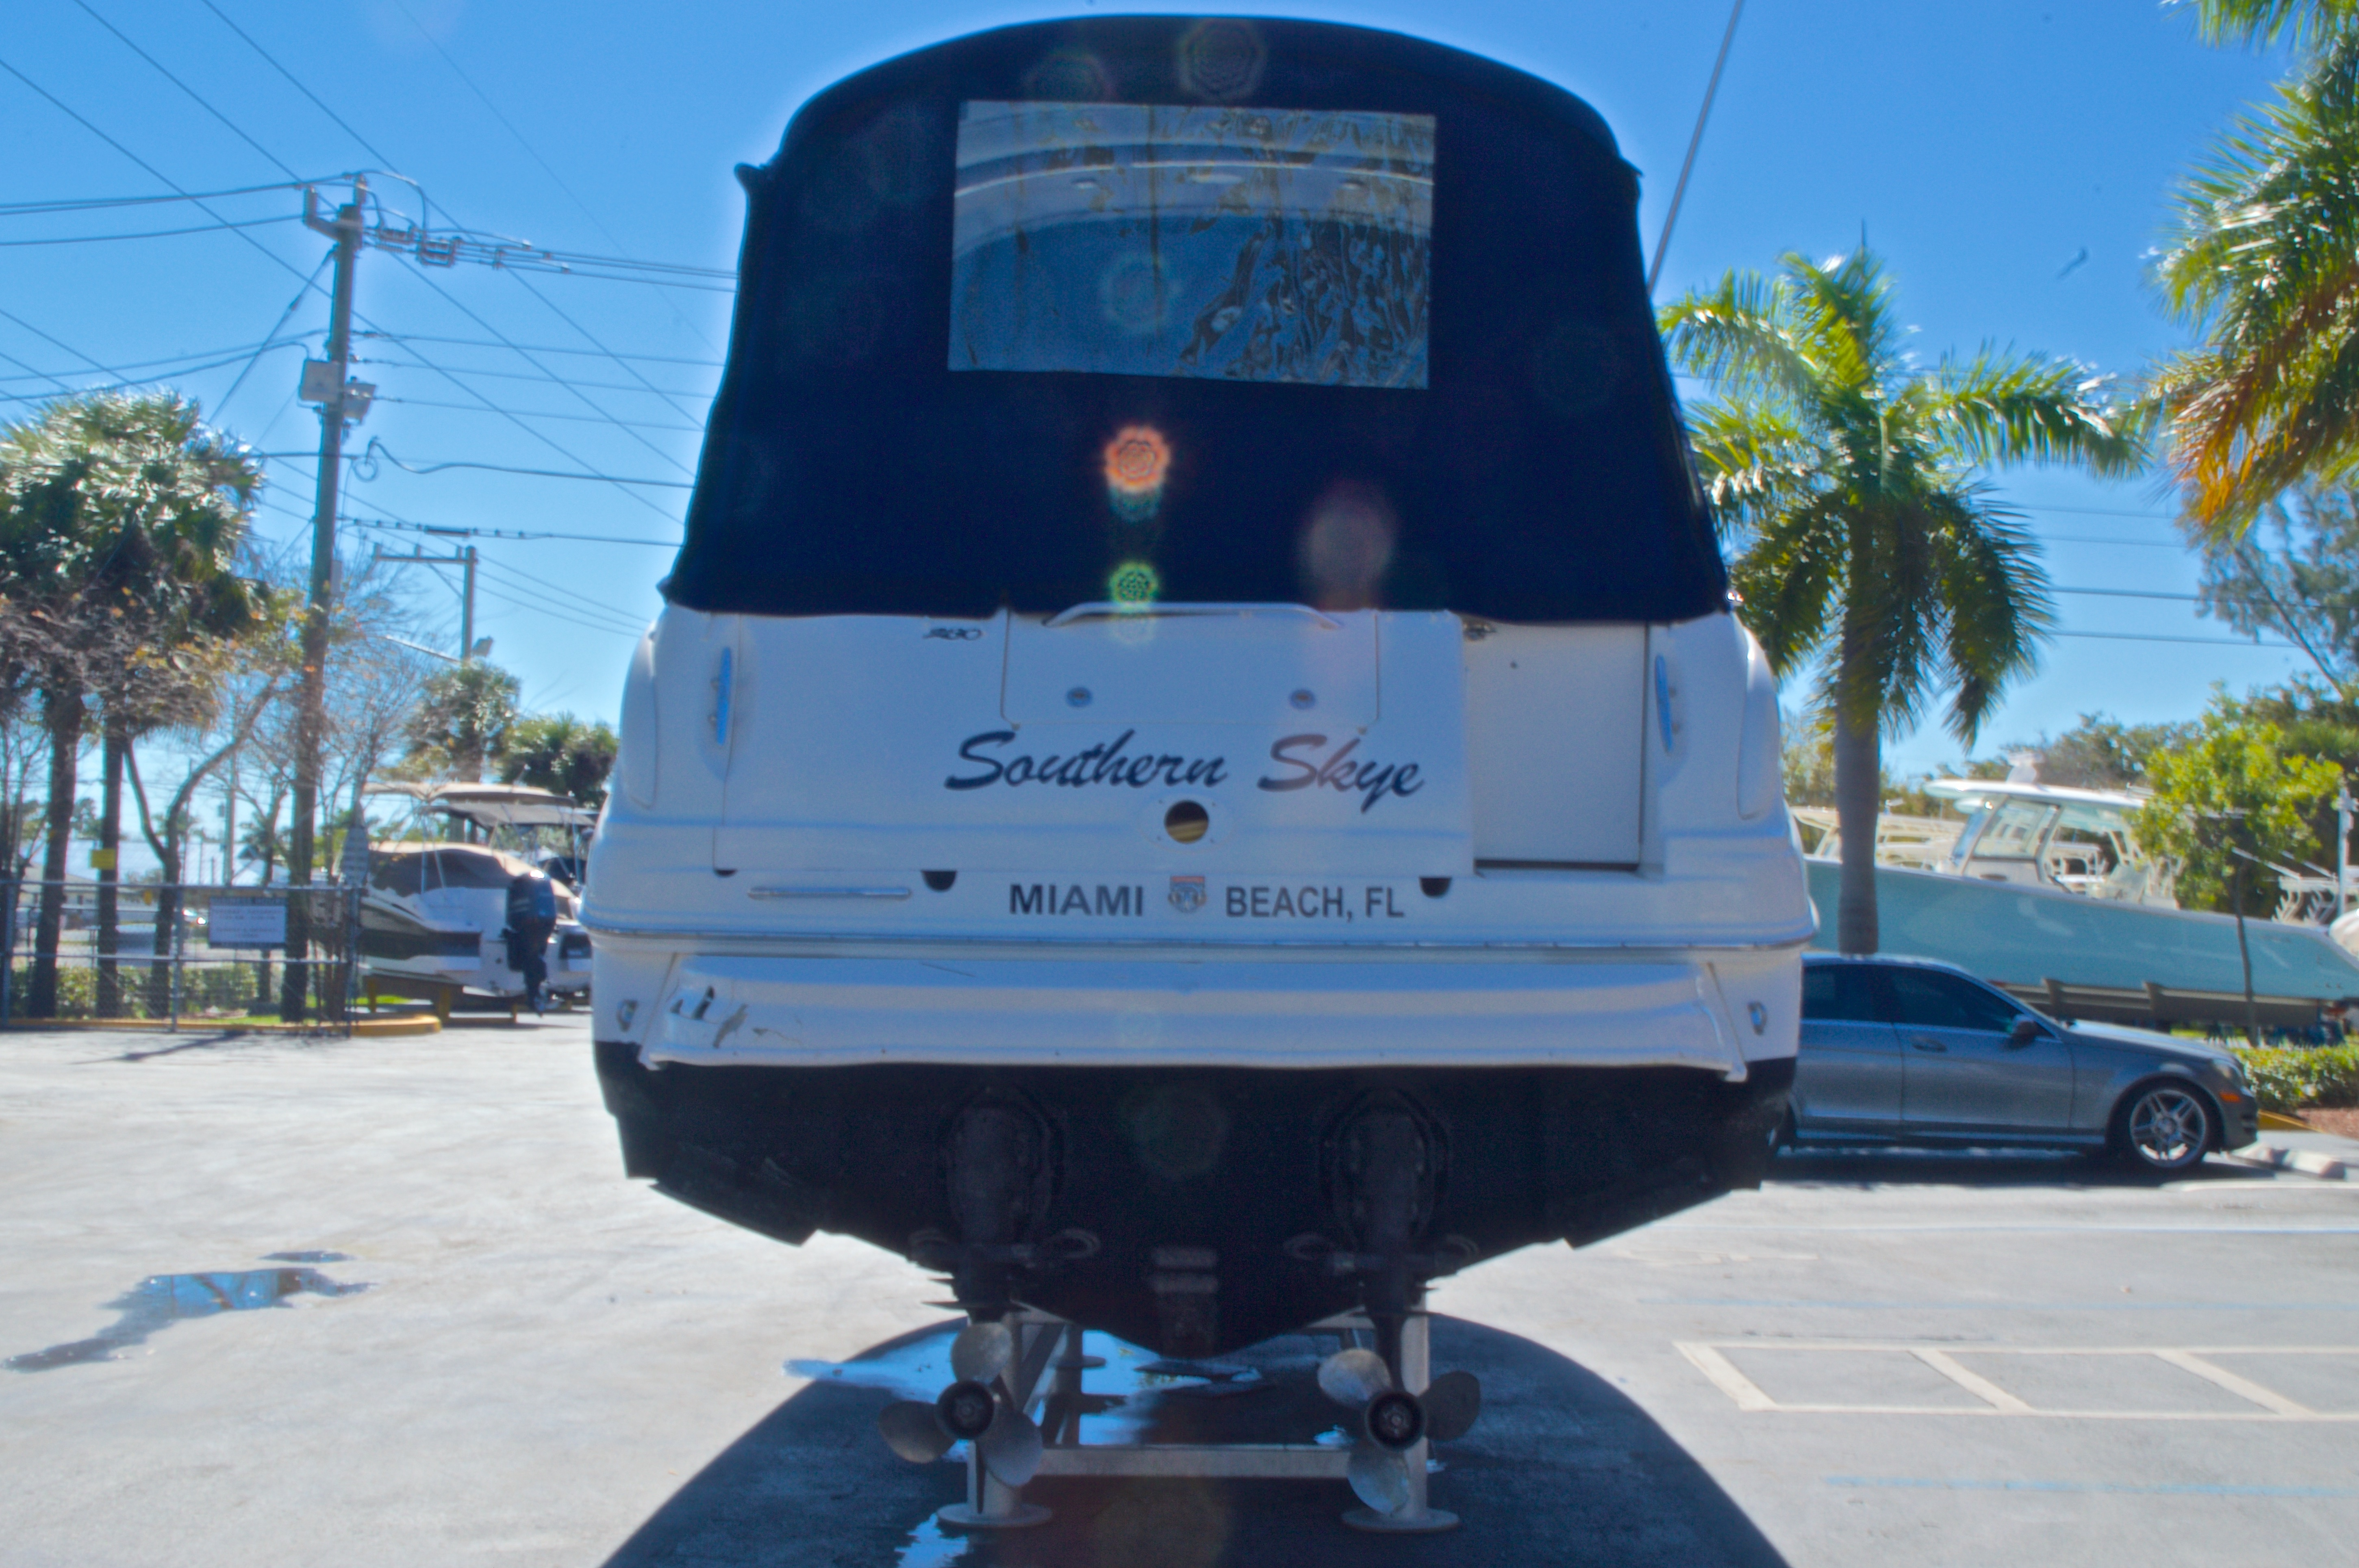 Thumbnail 2 for Used 2005 Sea Ray 280 Sundancer boat for sale in West Palm Beach, FL